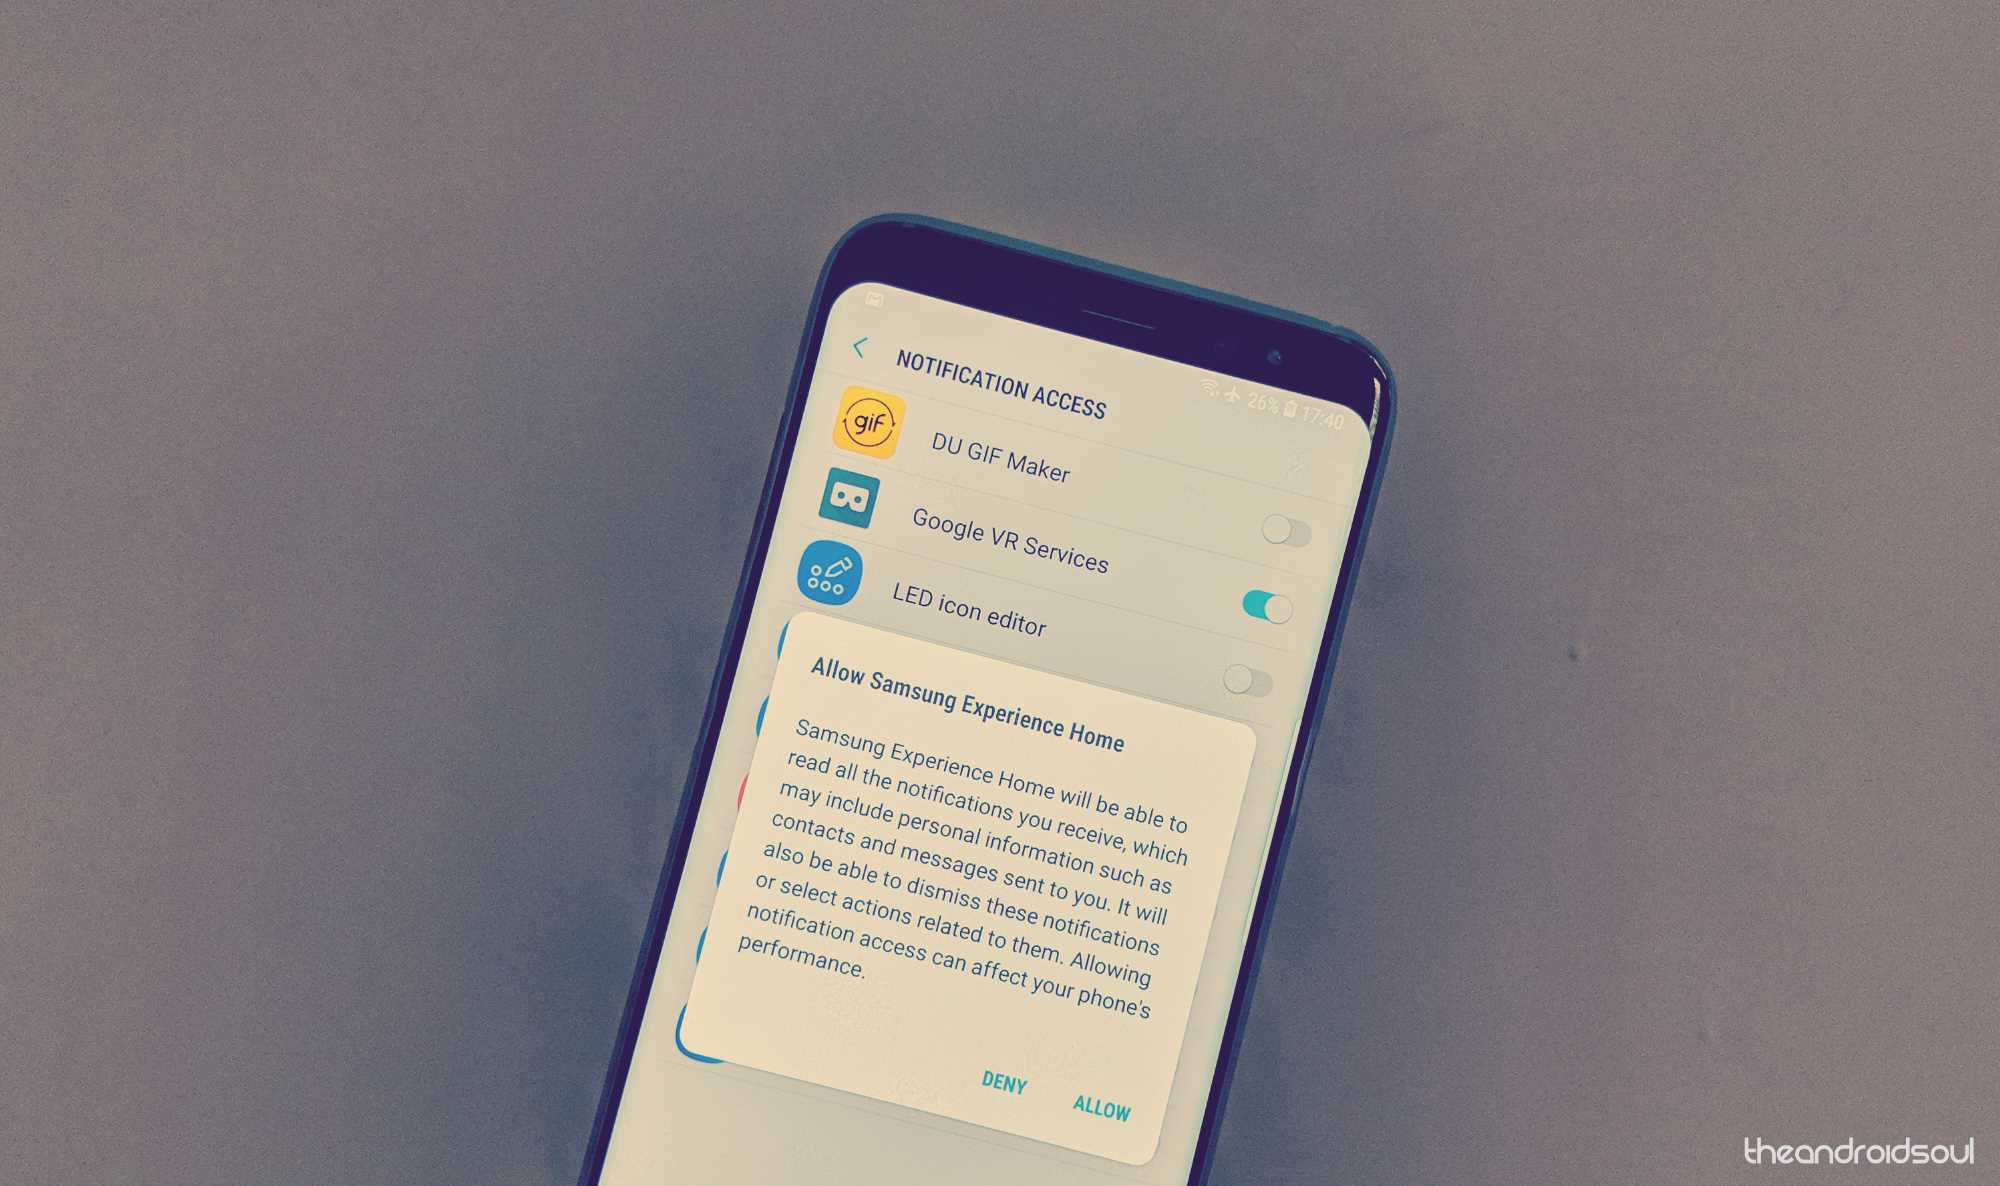 How to fix Notification badge icon problem on the Galaxy S9